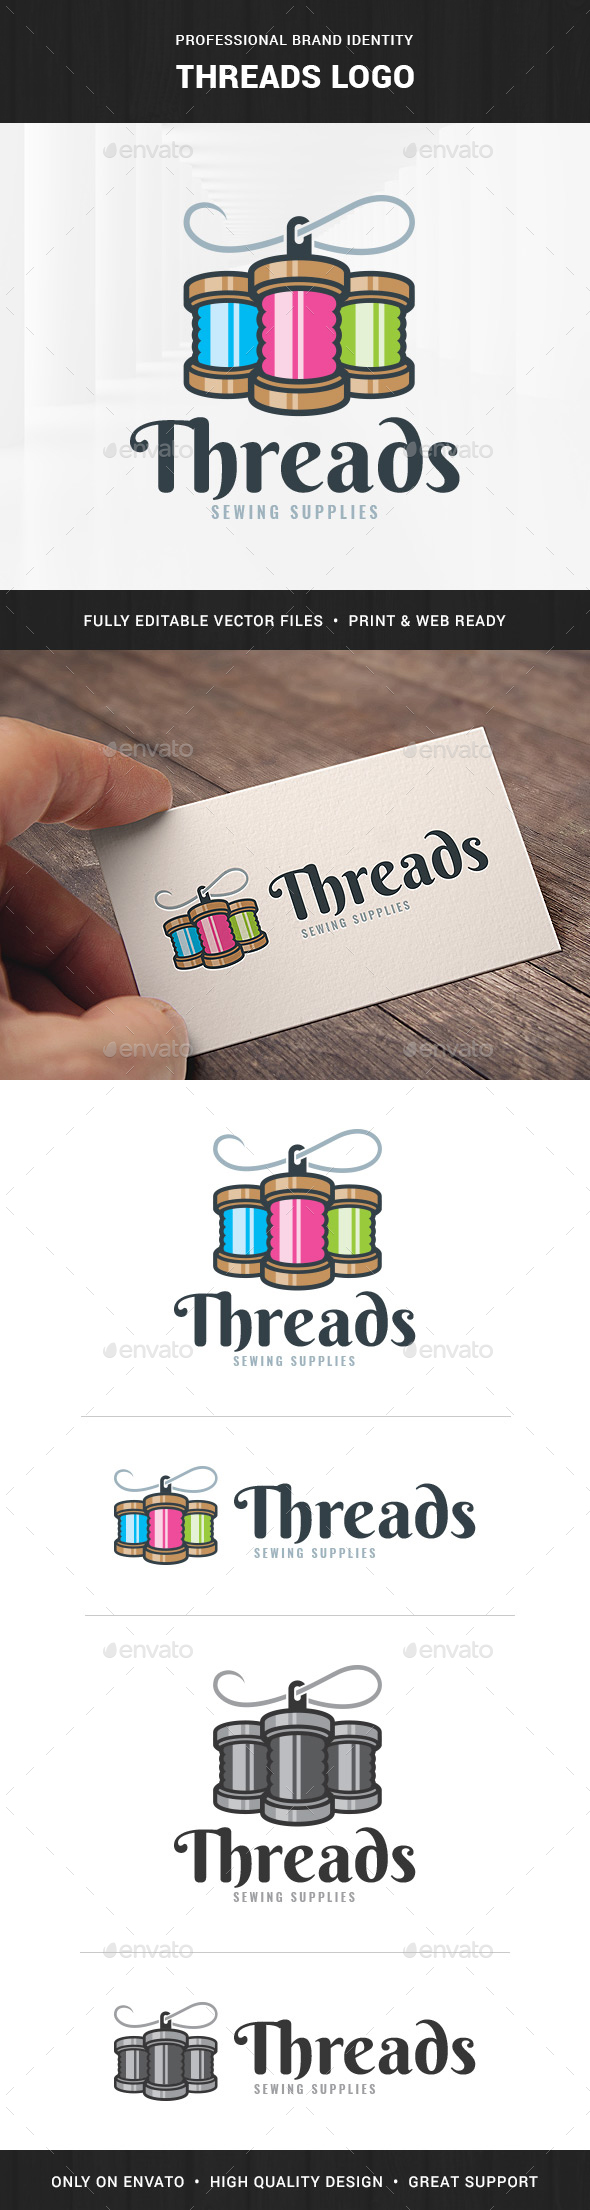 Threads Logo Template - Objects Logo Templates